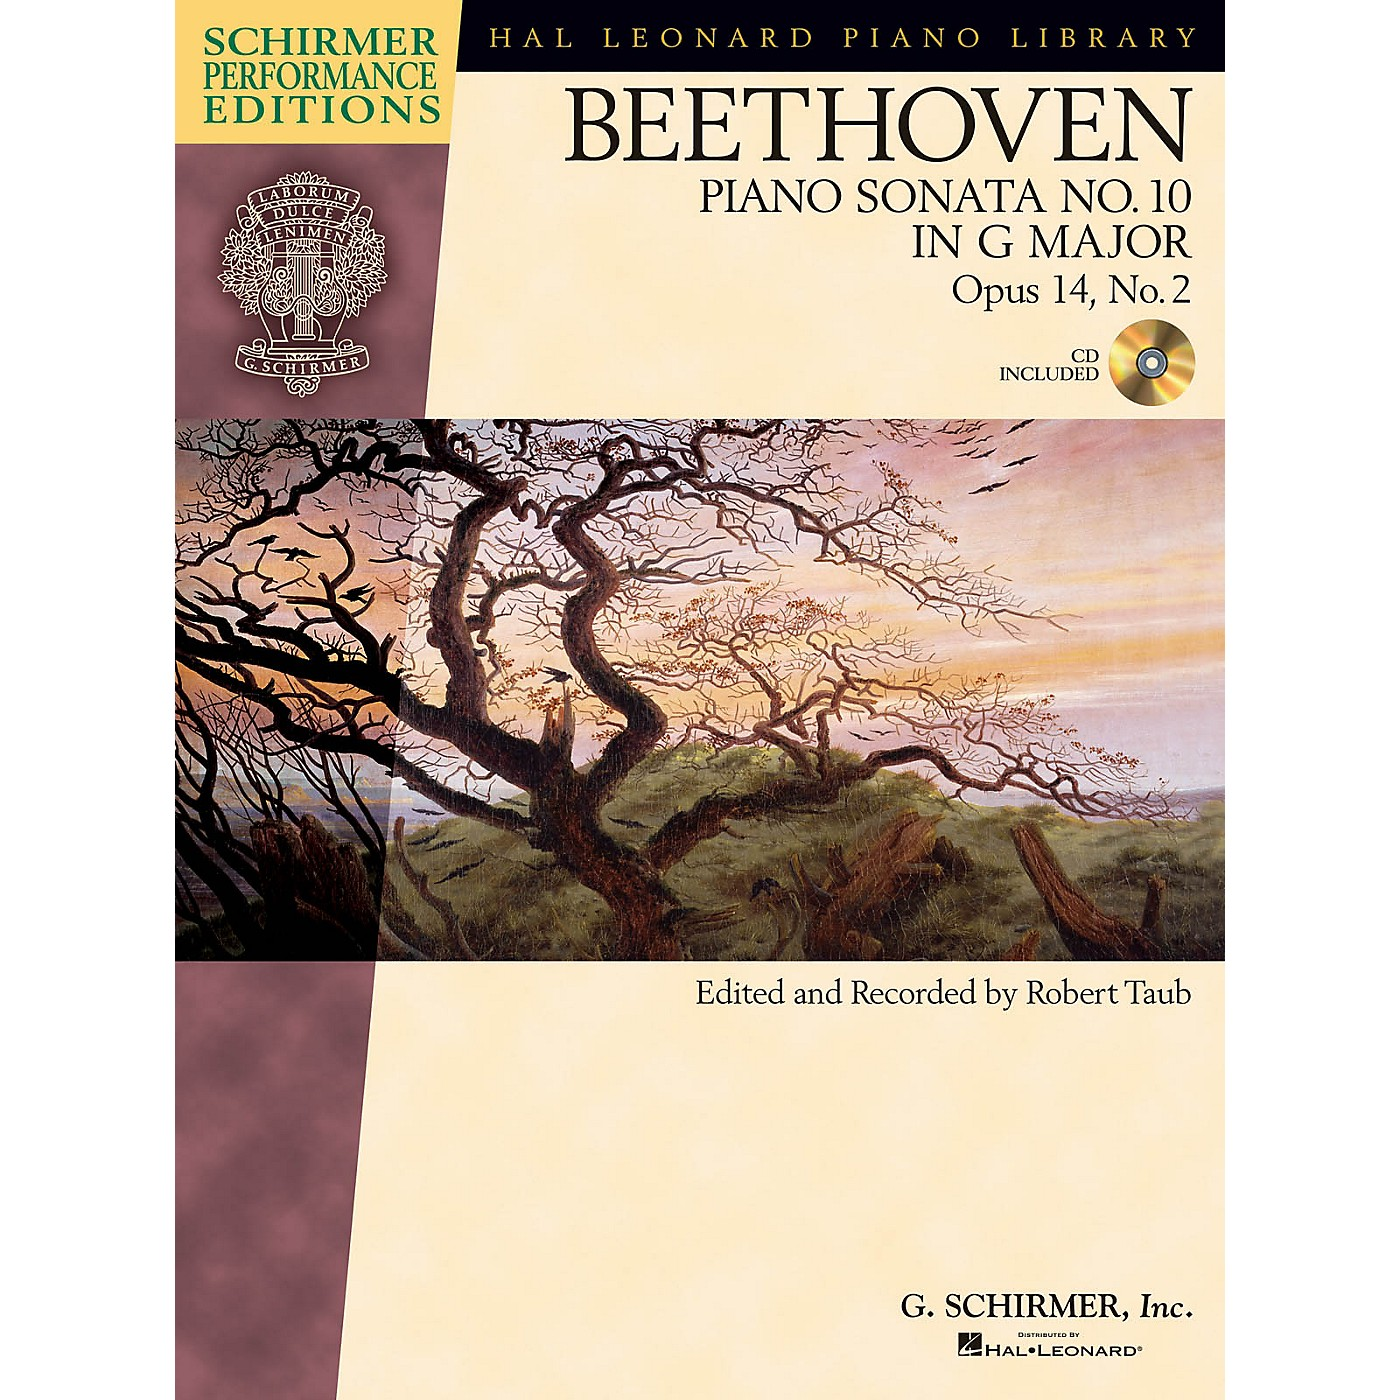 G. Schirmer Beethoven Sonata No 10 in G Maj Op 14 No 2 Schirmer Performance Edition BK/CD by Beethoven Edited by Taub thumbnail